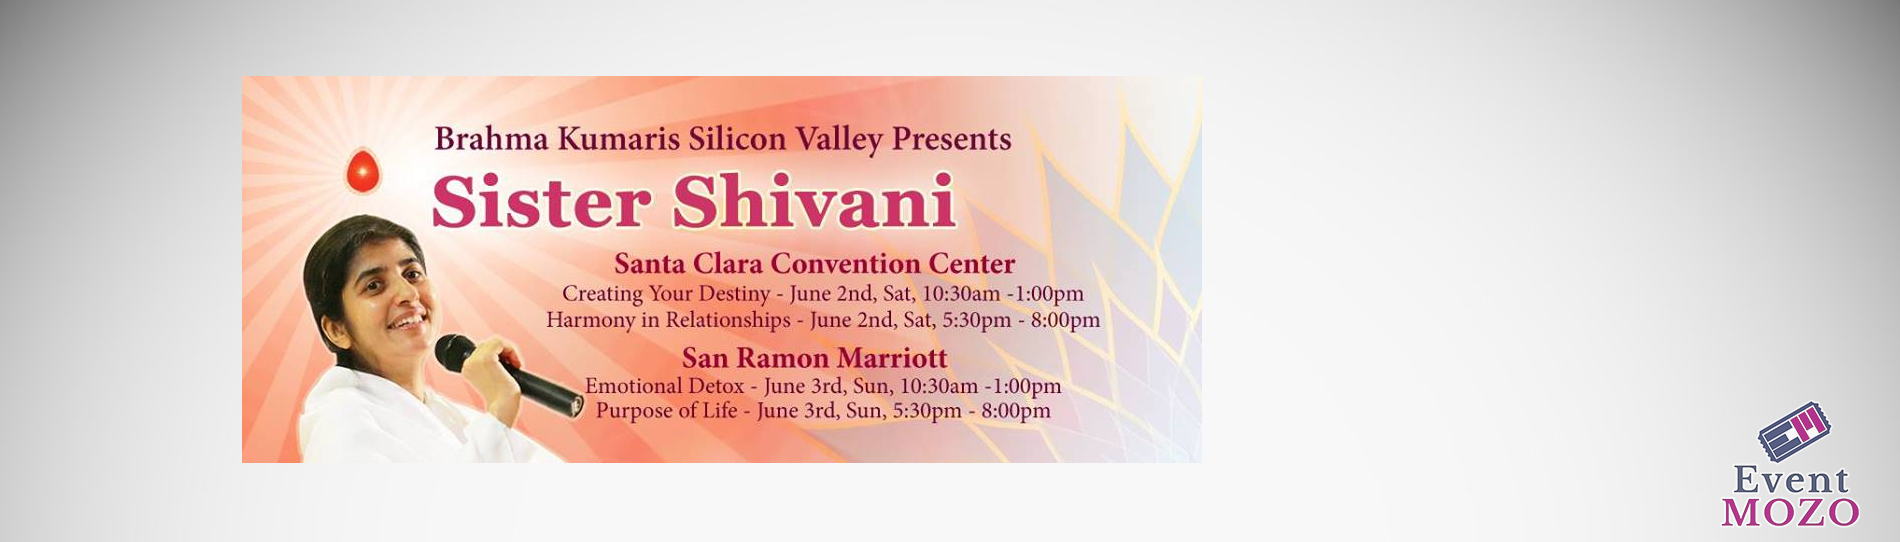 EventMozo Sister Shivani to Silicon Valley